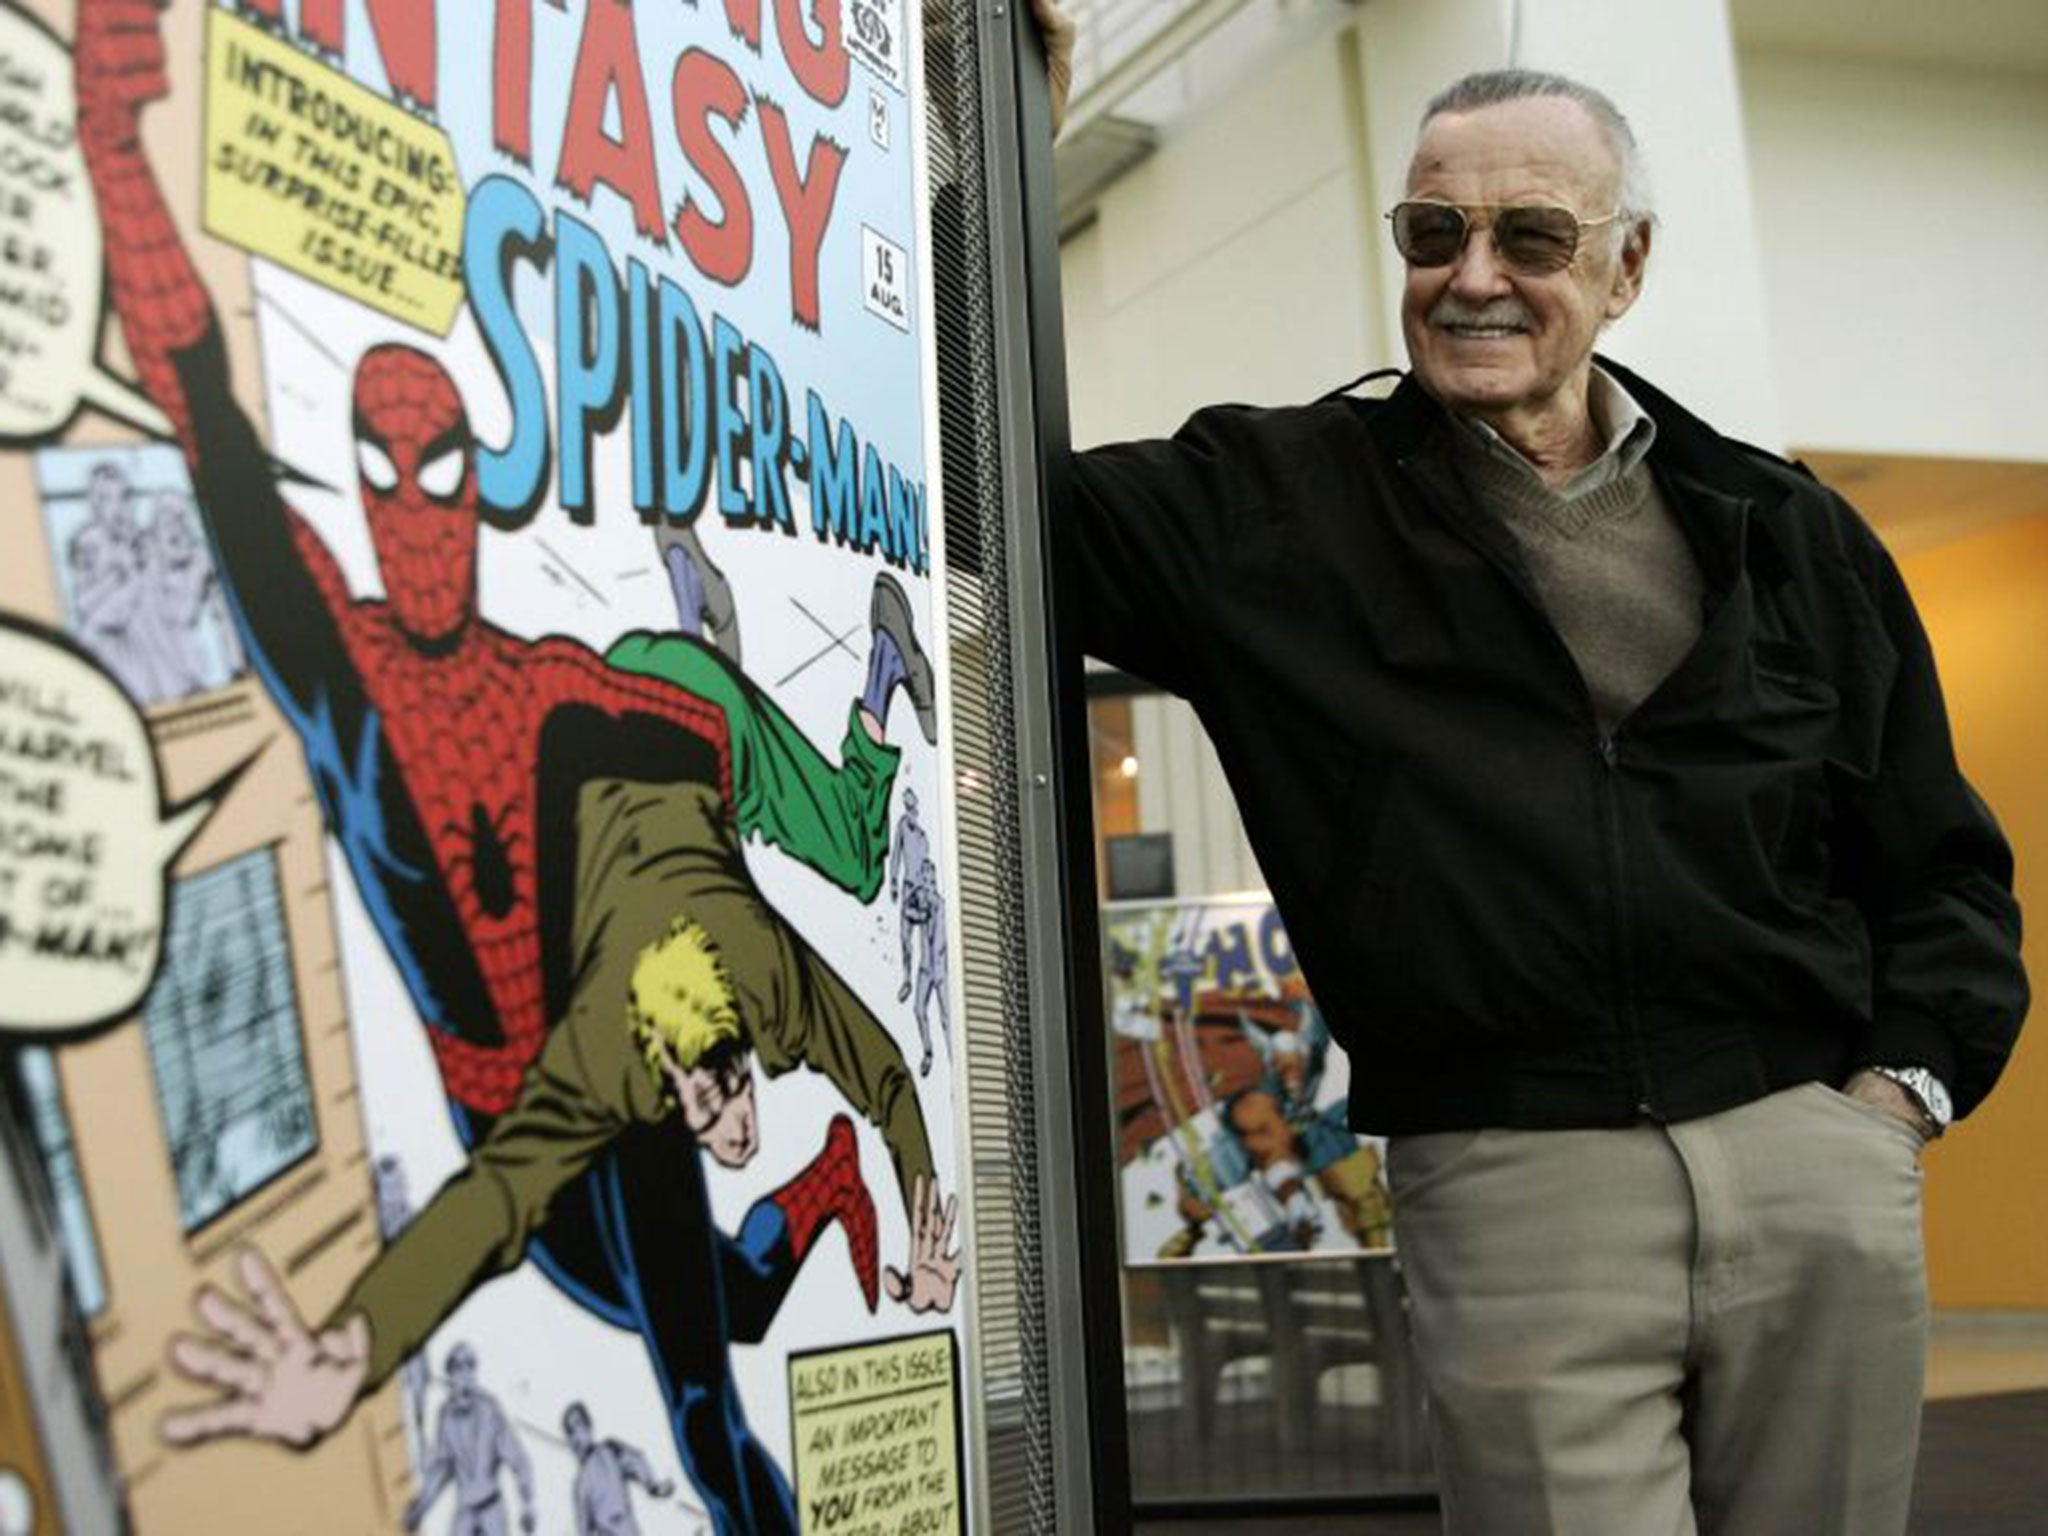 https://static.independent.co.uk/s3fs-public/thumbnails/image/2016/01/11/21/7-stan-lee-ap.jpg